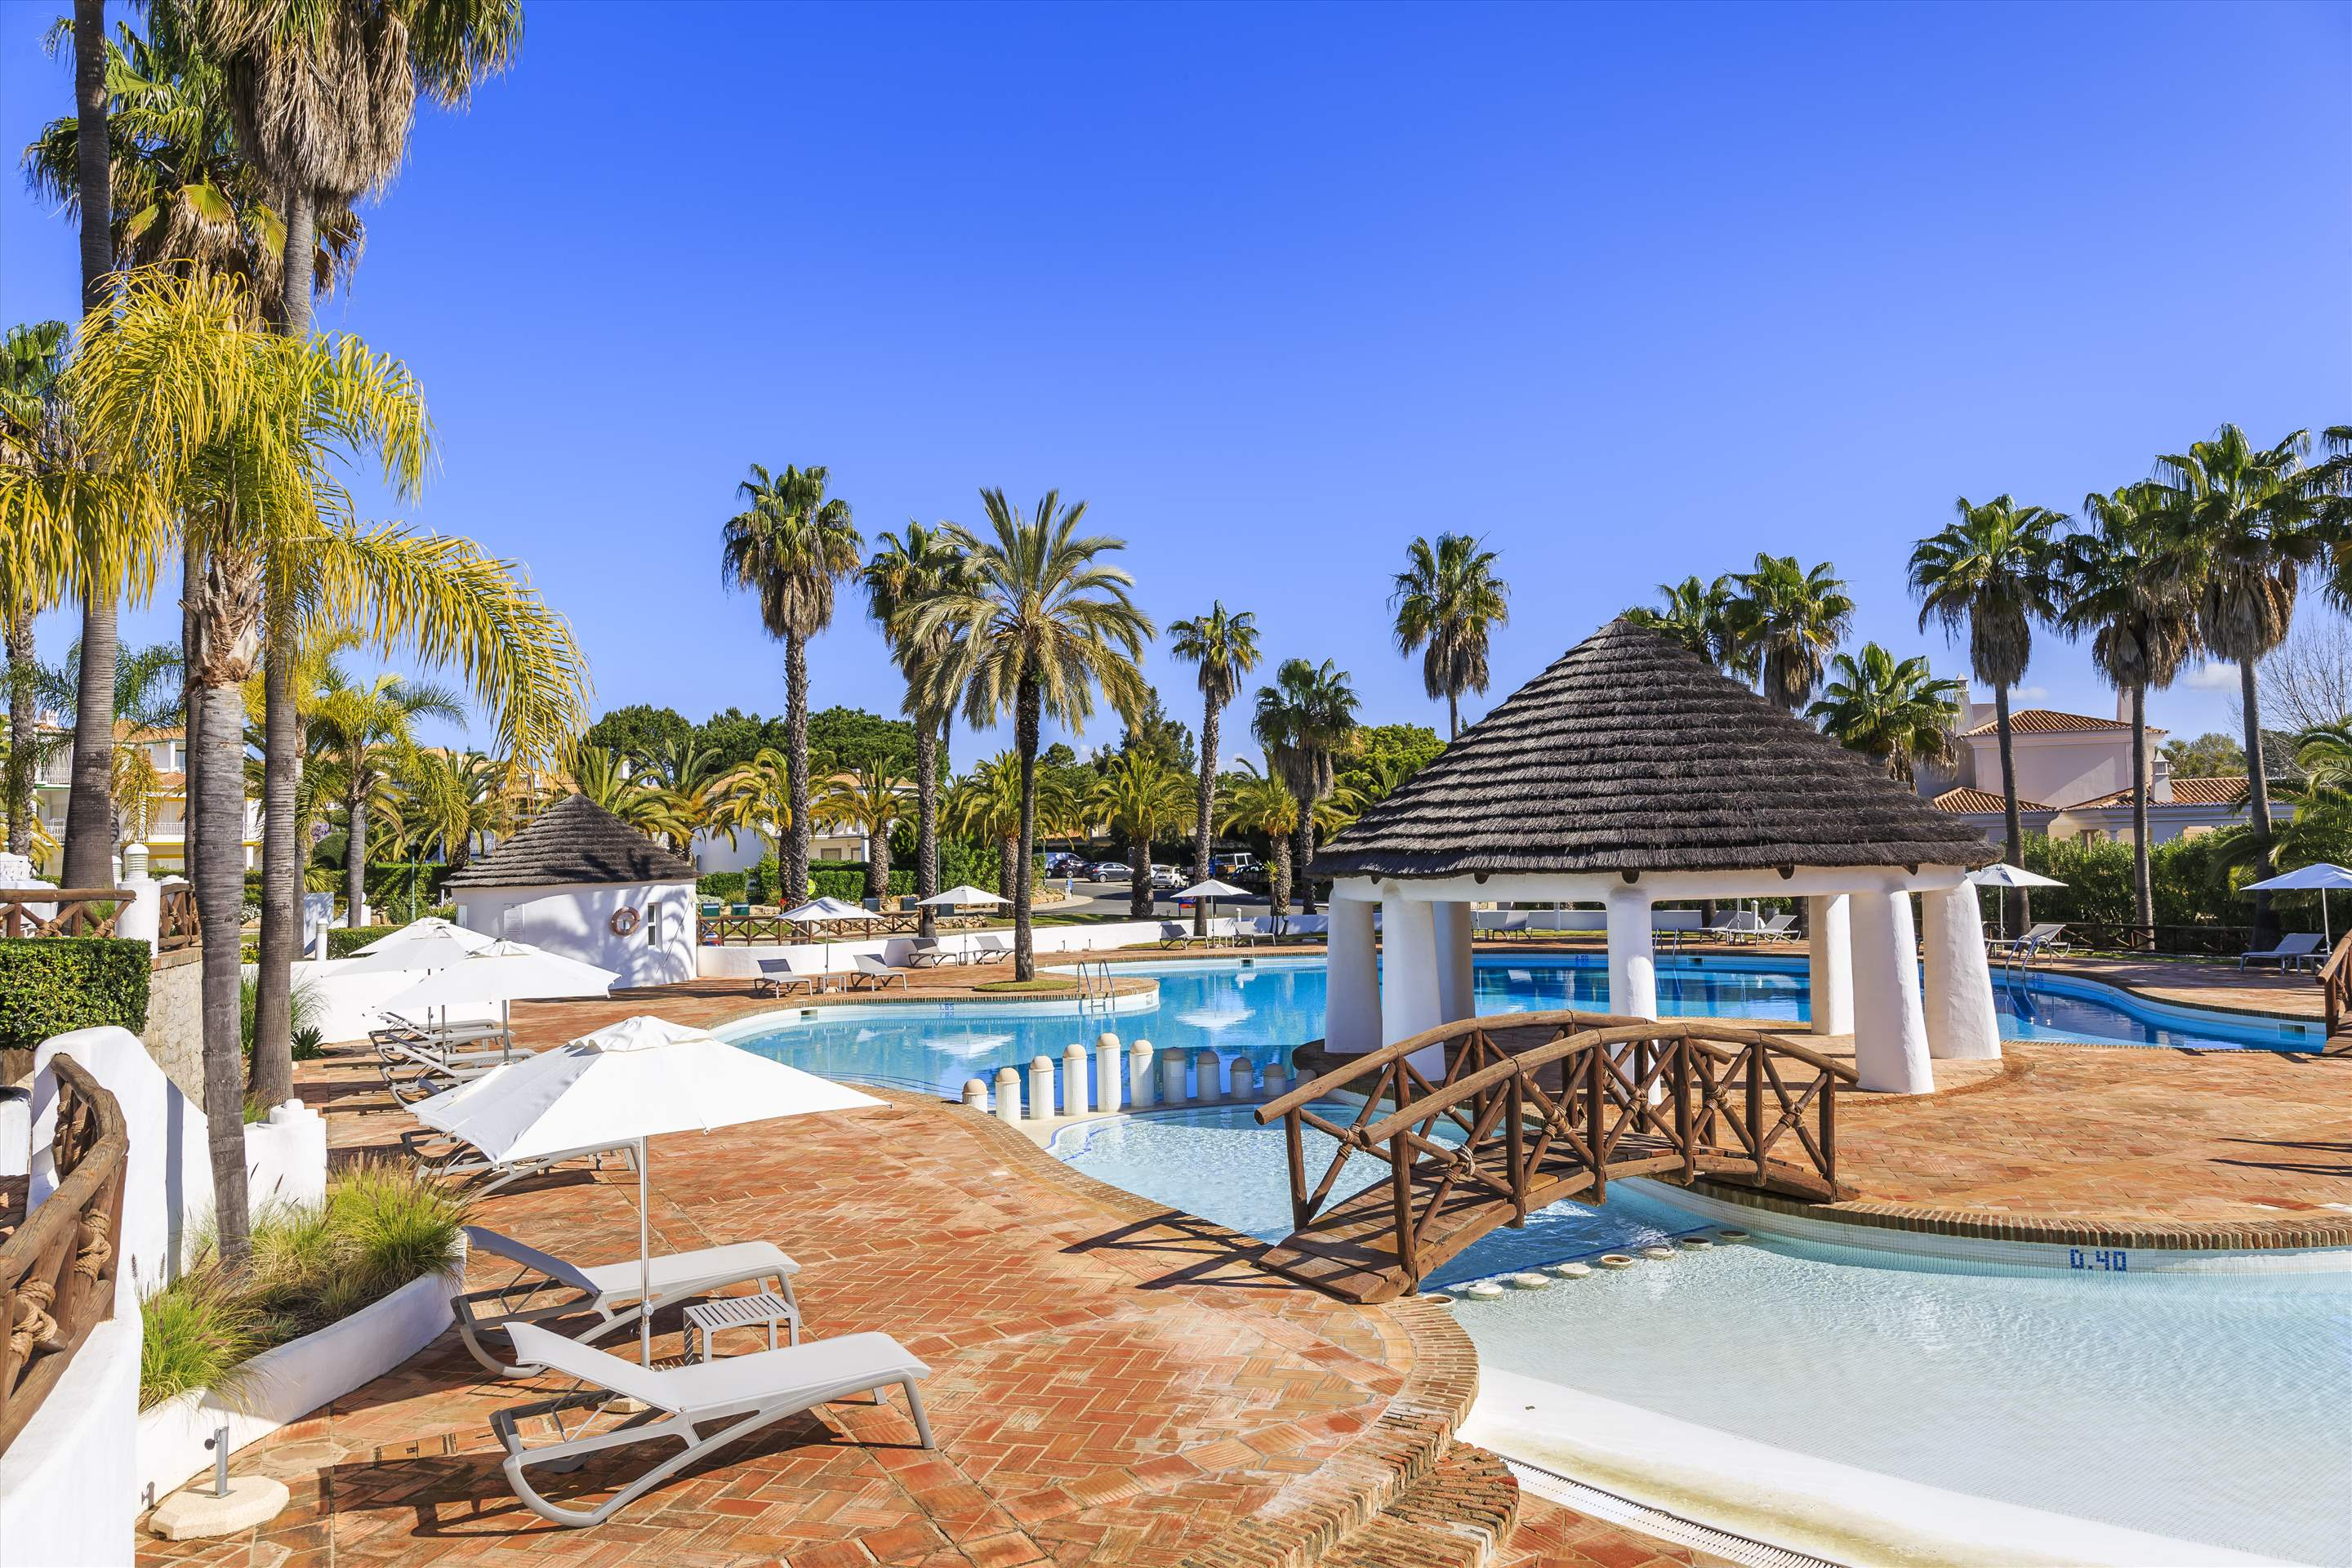 Encosta do Lago 1 Bedroom Apt, Top Floor, 1 bedroom apartment in Encosta do Lago Resort, Algarve Photo #10